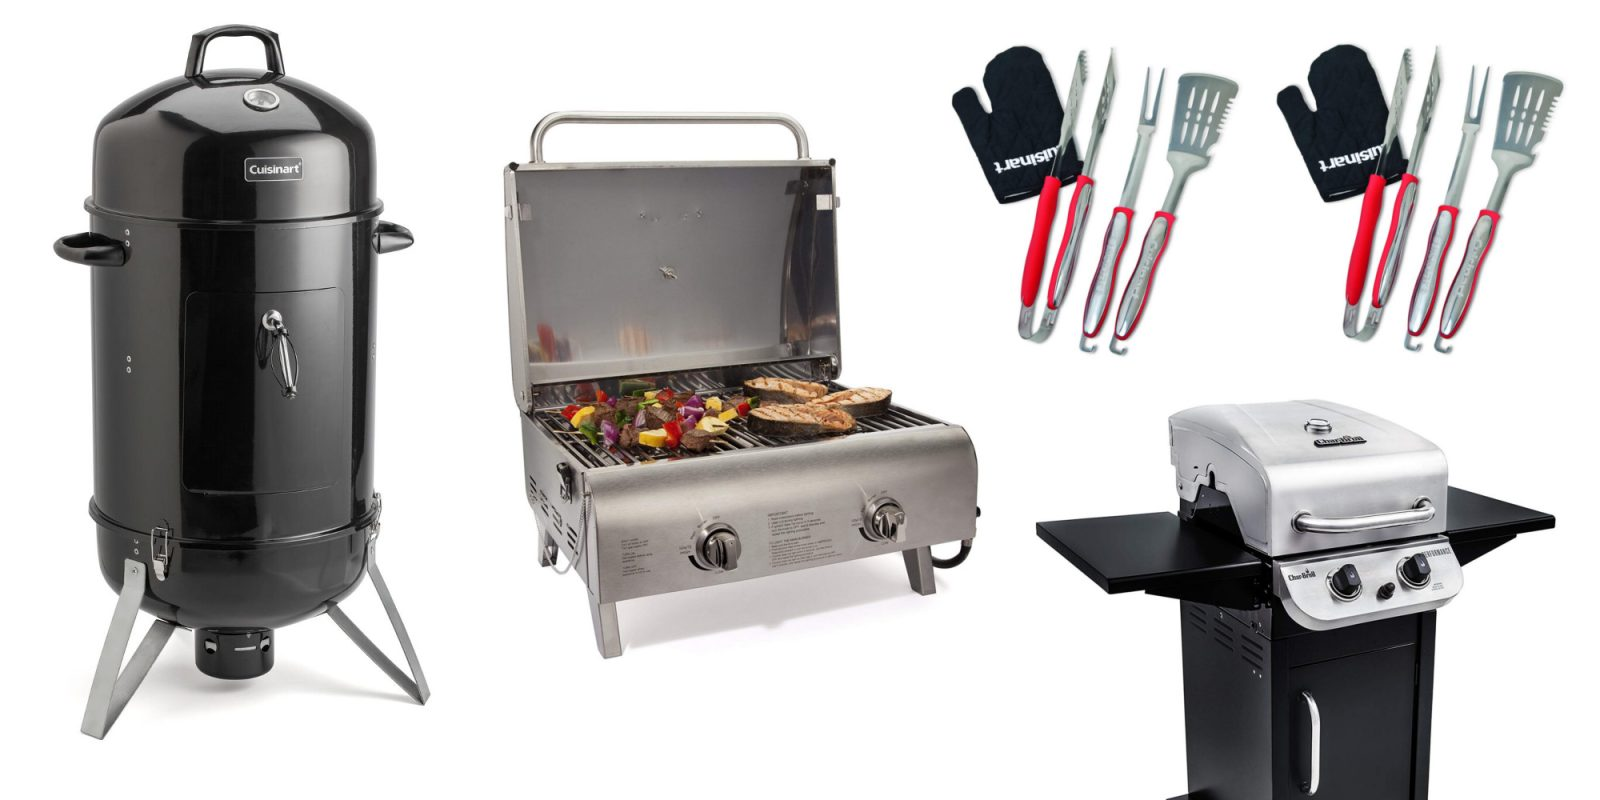 Grills and BBQ accessories from $11 for Prime Day: Cuisinart, Char-Broil, more